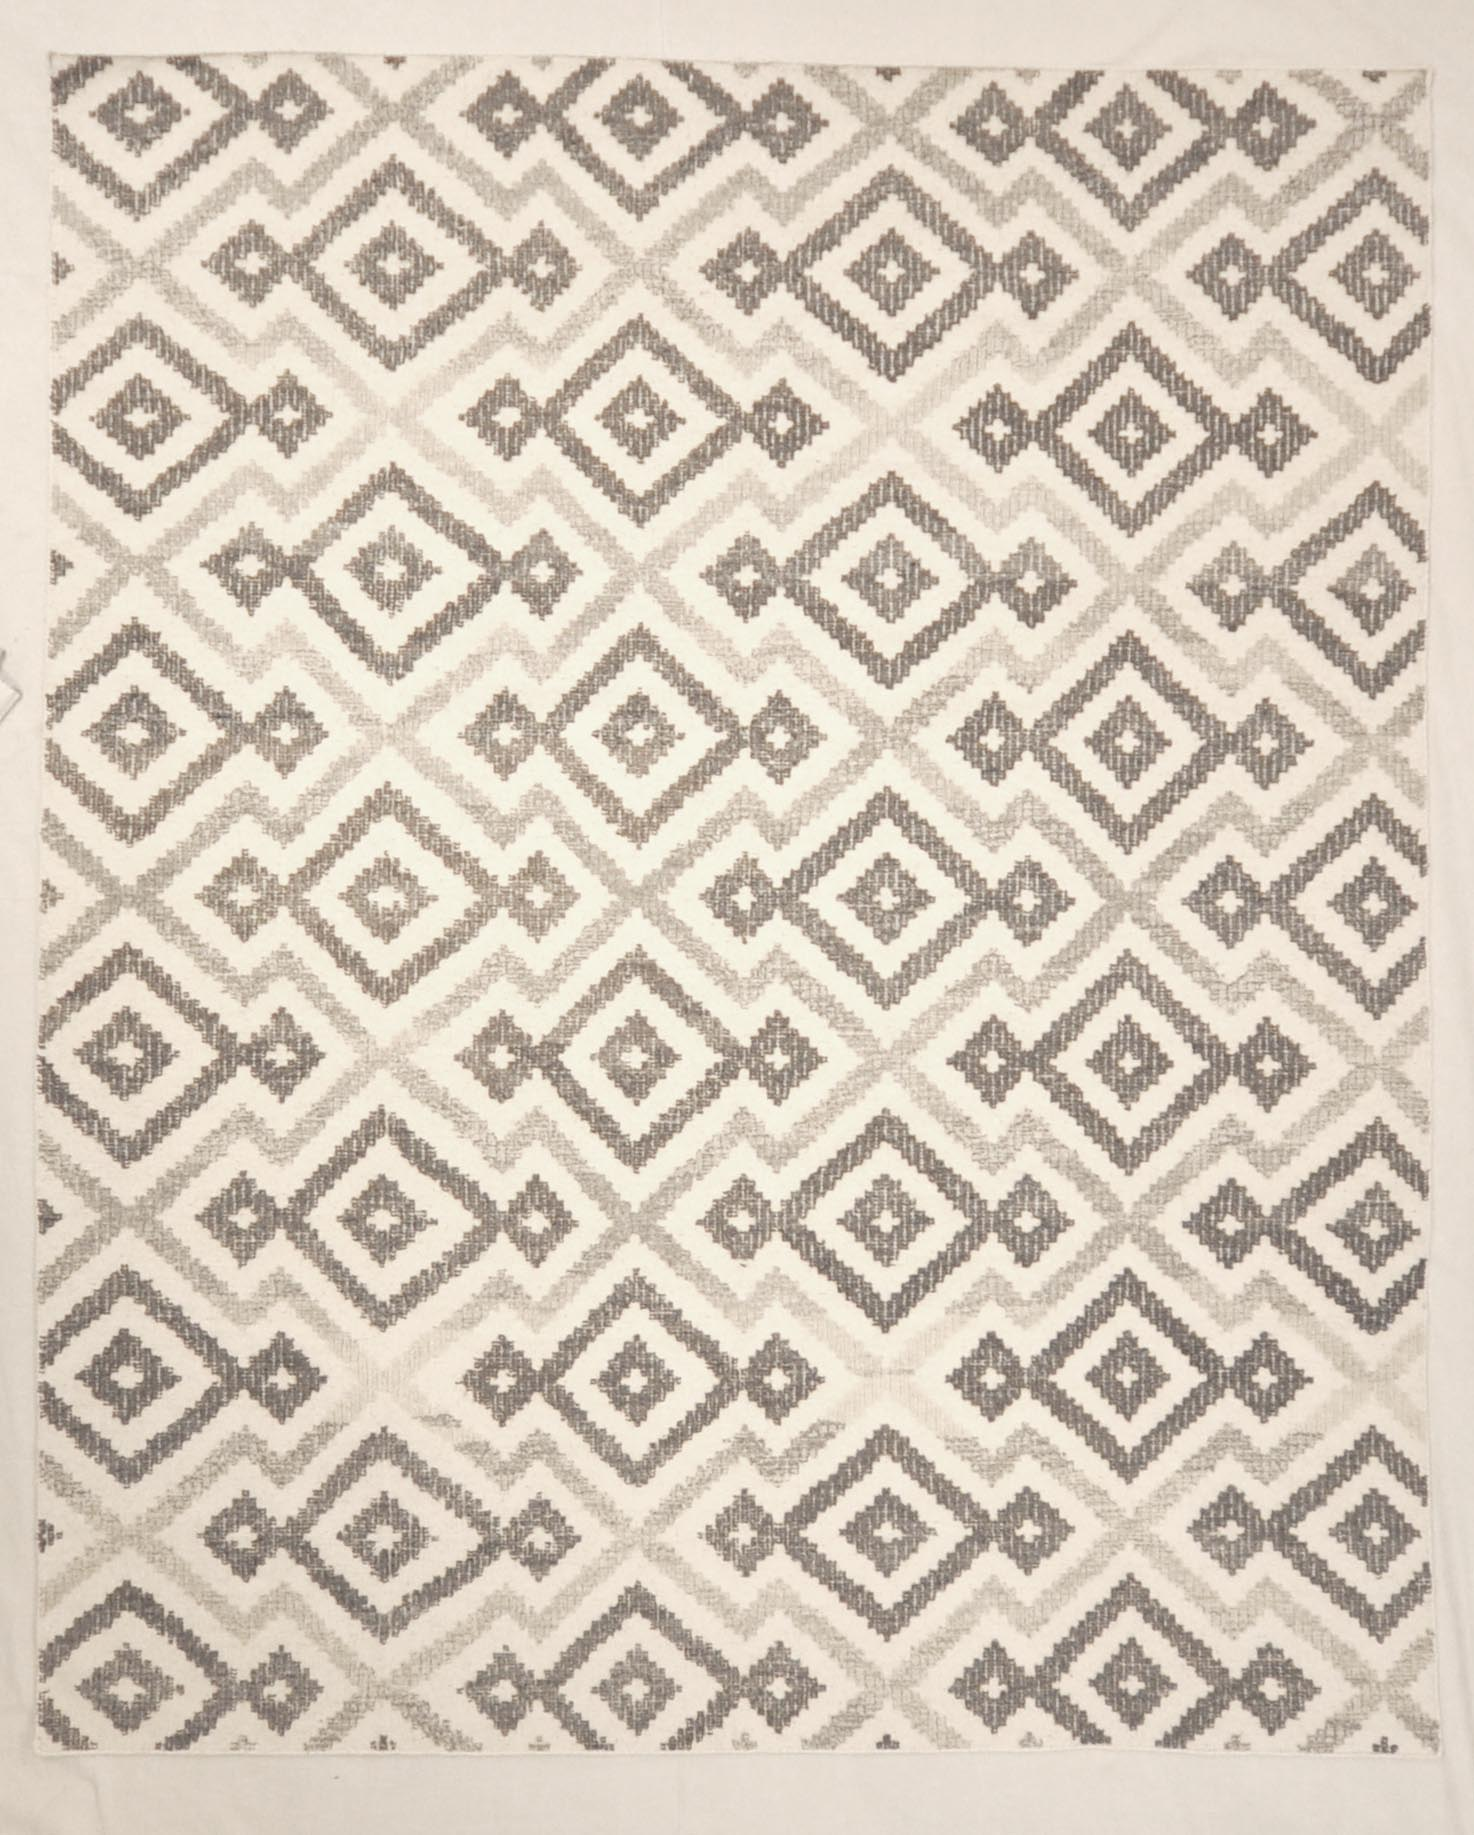 Modern Grey Rug Rugs and More | Santa Barbara Design Center 33031 33031 .